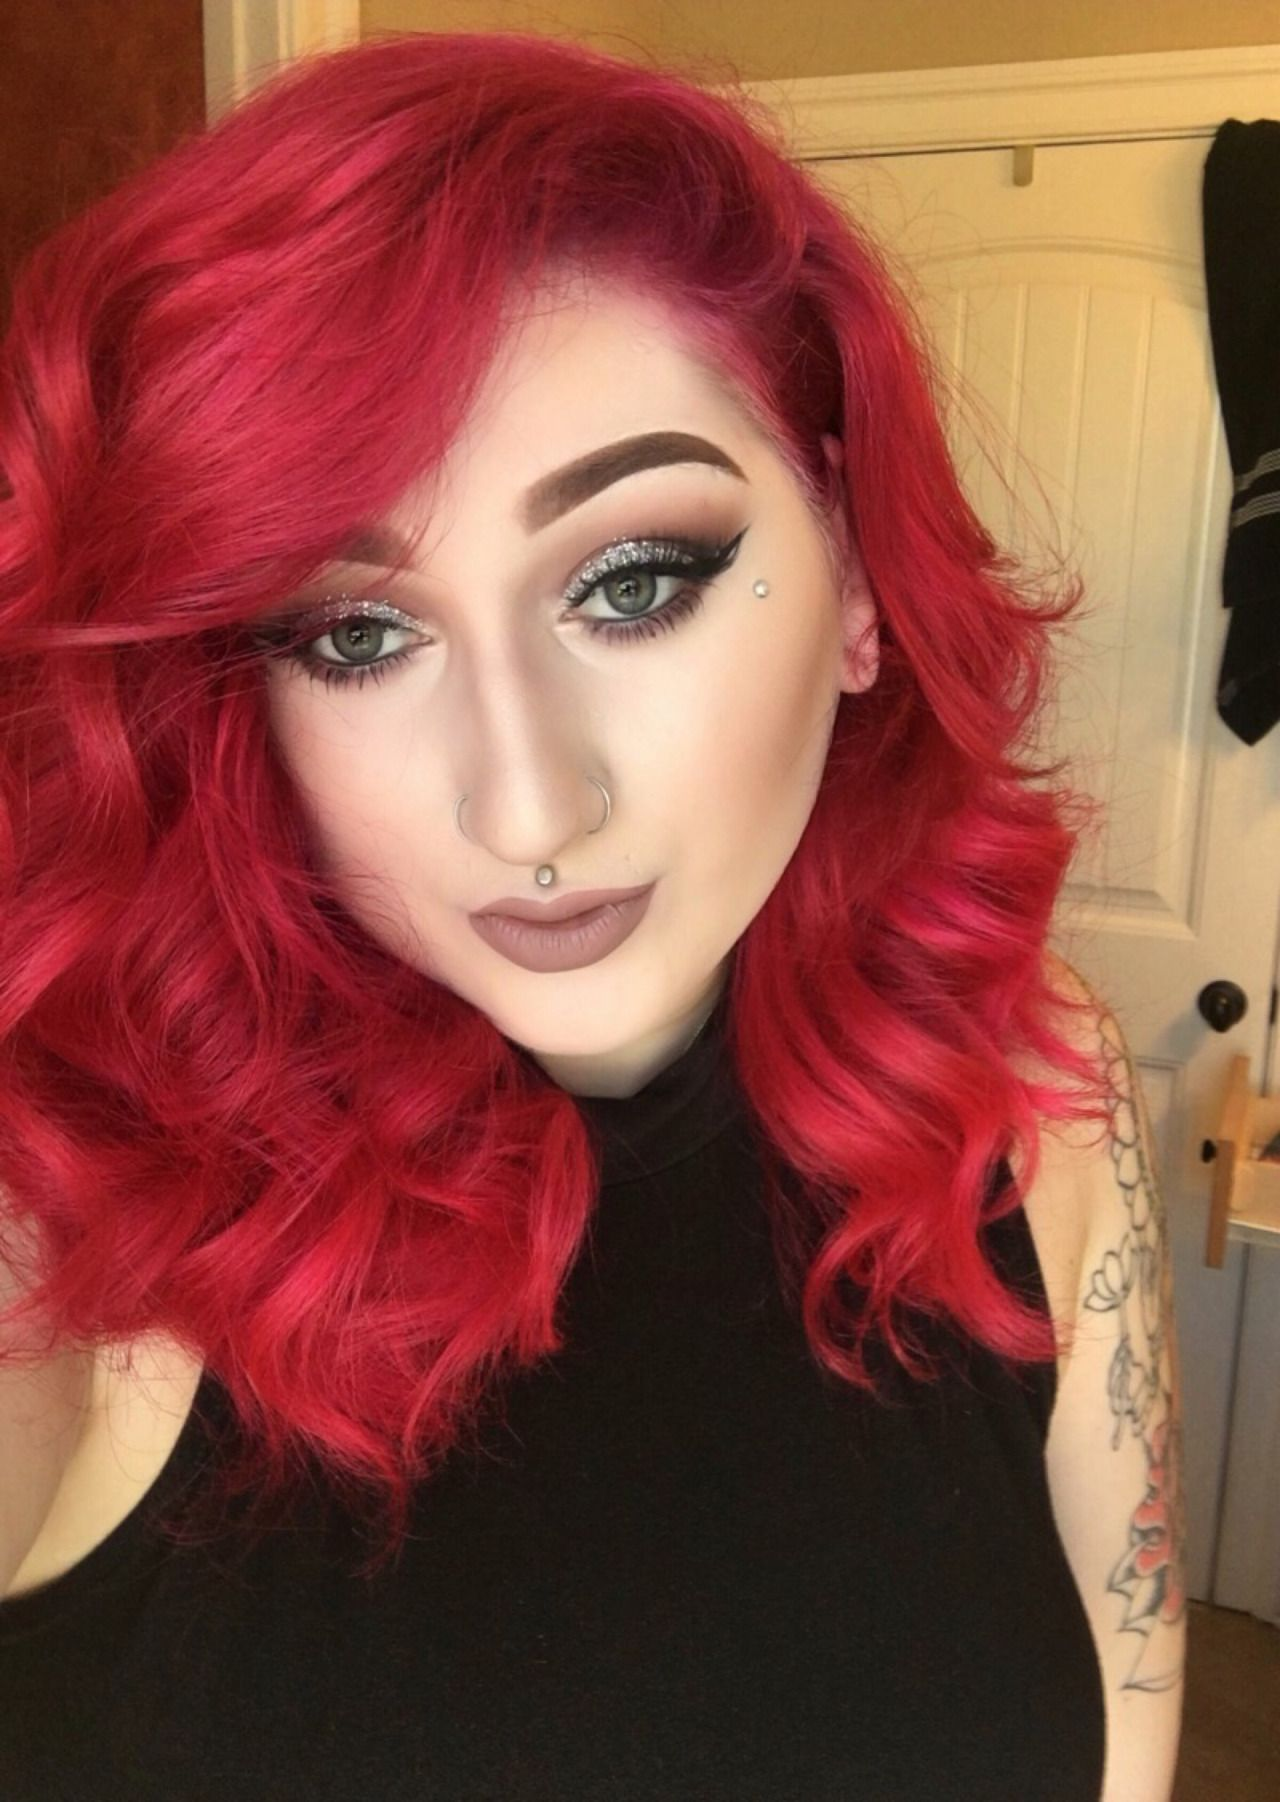 heroinebob Haircut and color, Extreme hair colors, Hair blog